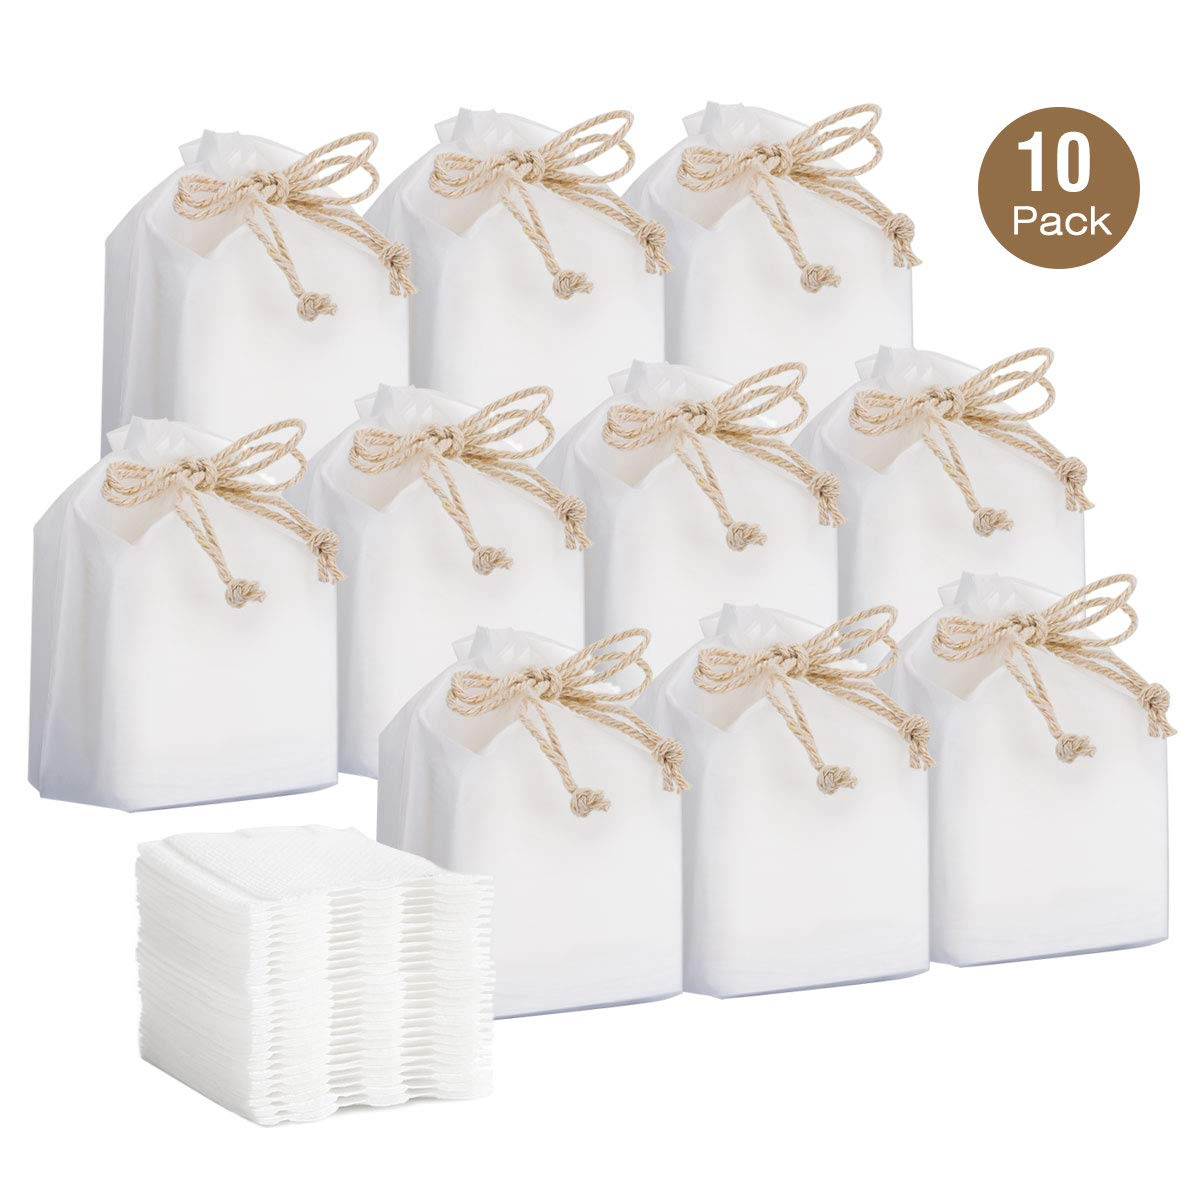 Luxspire 10-Pack 300 Count Cotton Pads, Soft Lint-Free Multi-Layer Square Facial Eye Makeup Remover Cotton Rounds Balls Cleansing Cotton Sponge Makeup Tool - White